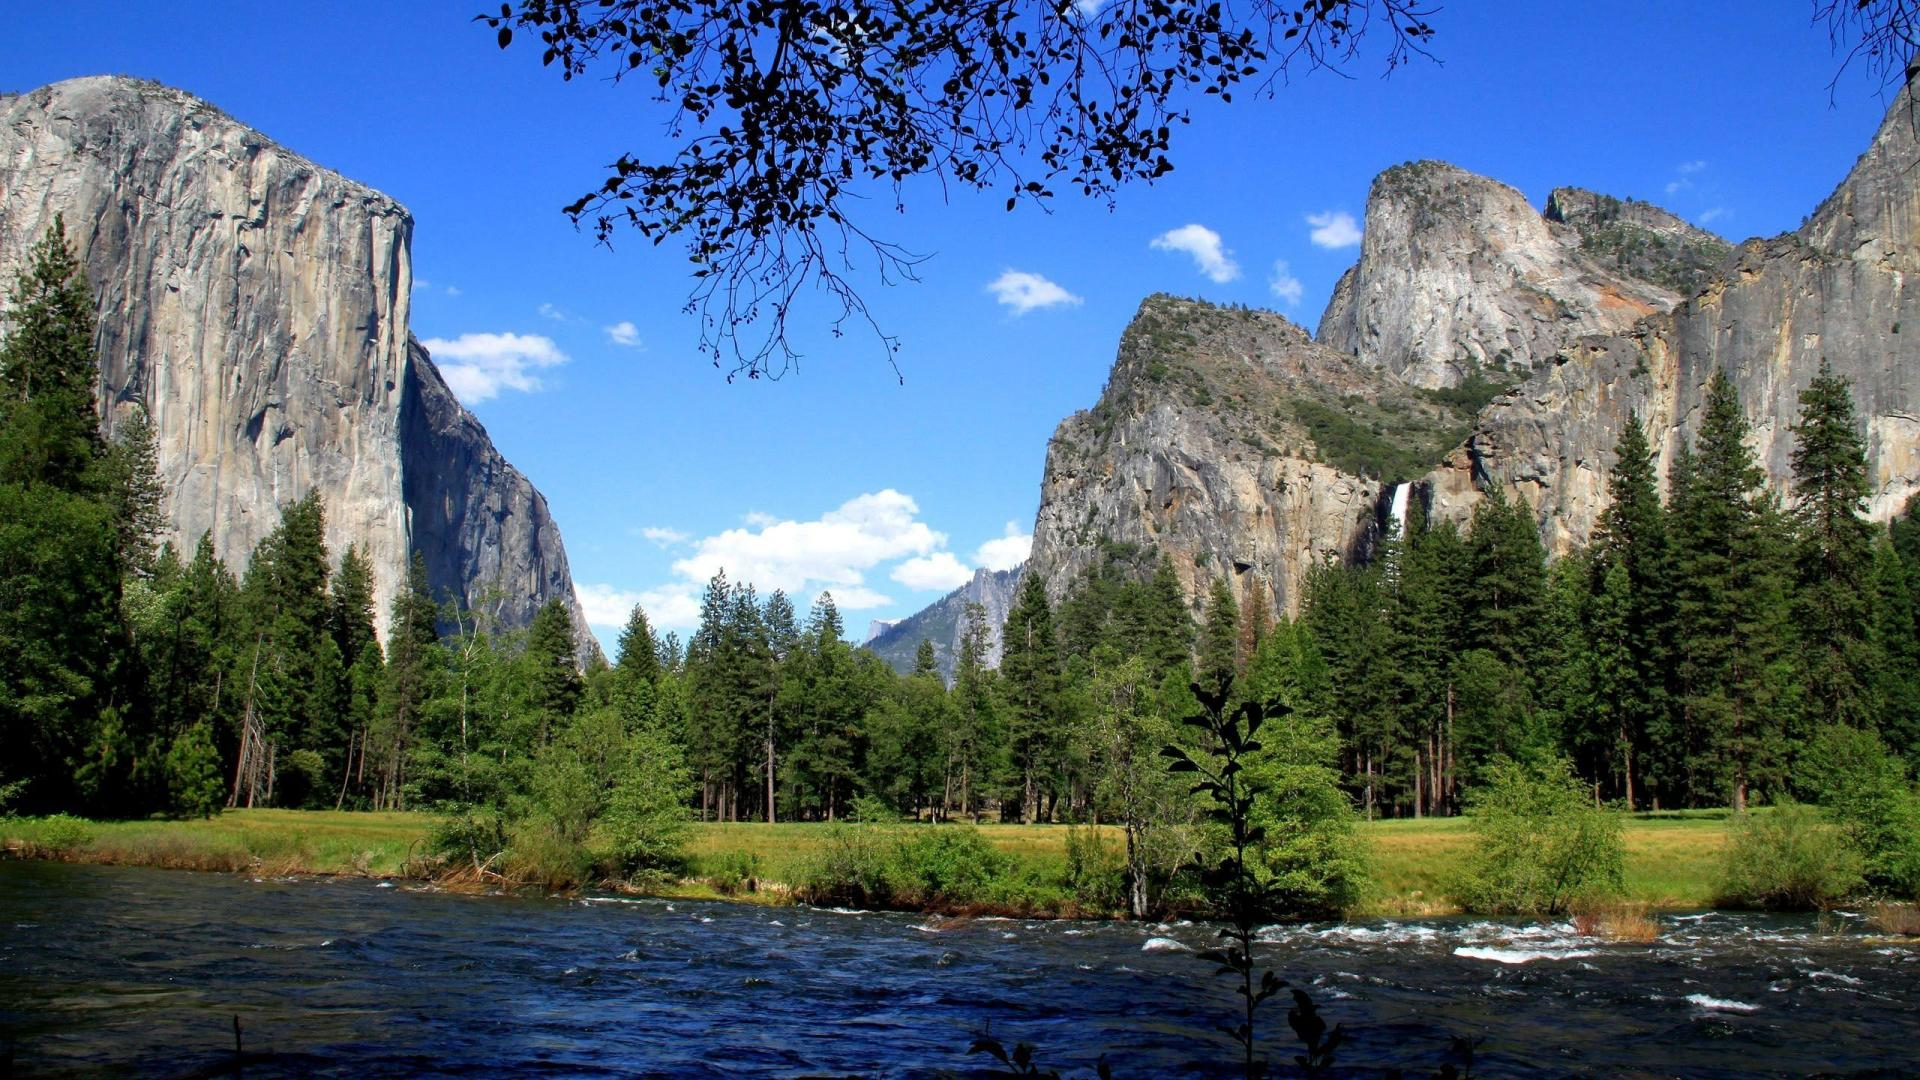 download apple mac os x el capitan wallpapers we provide the best